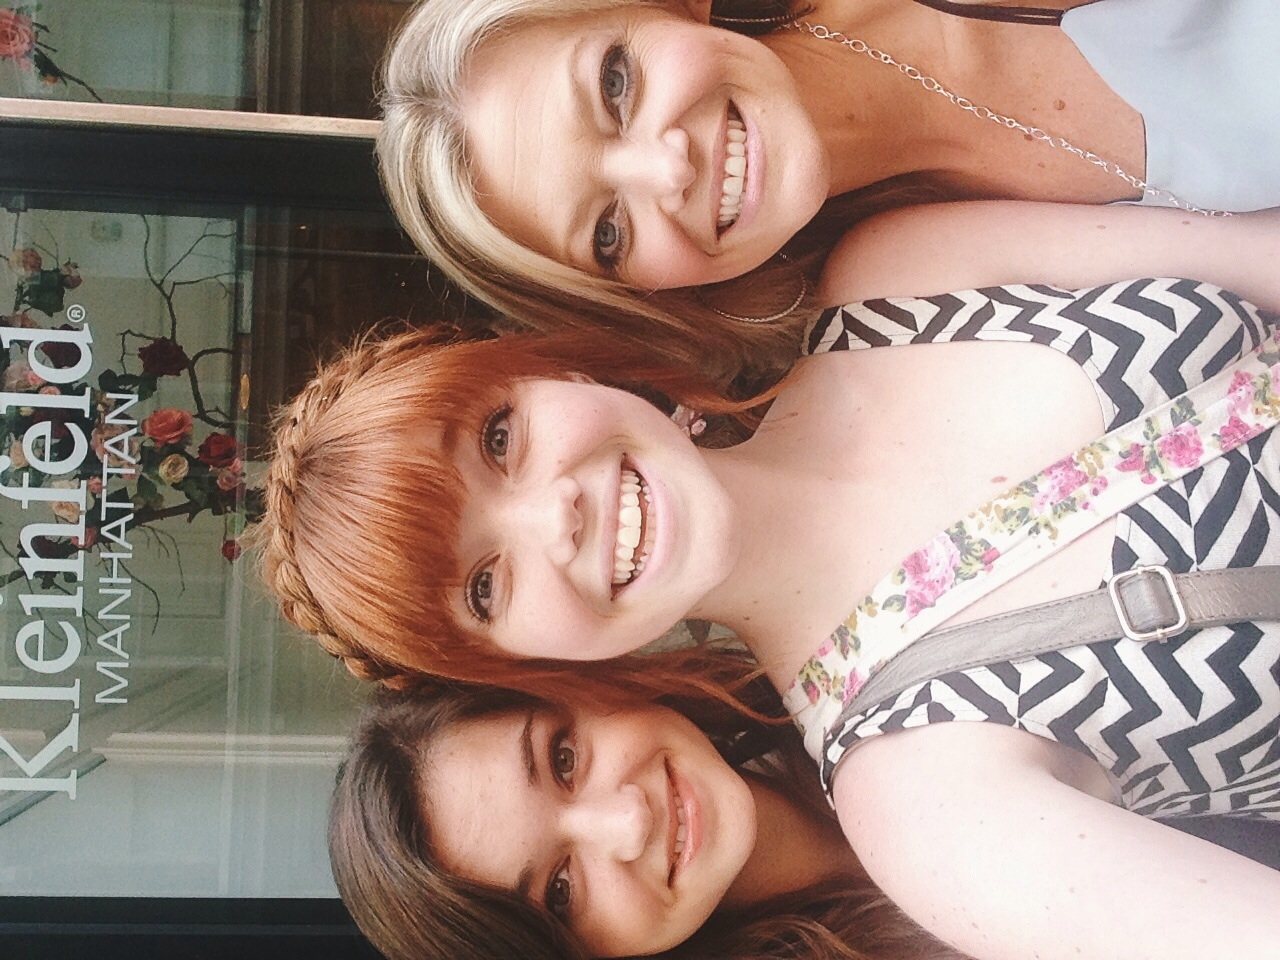 a blonde, a brunette and a red-head...